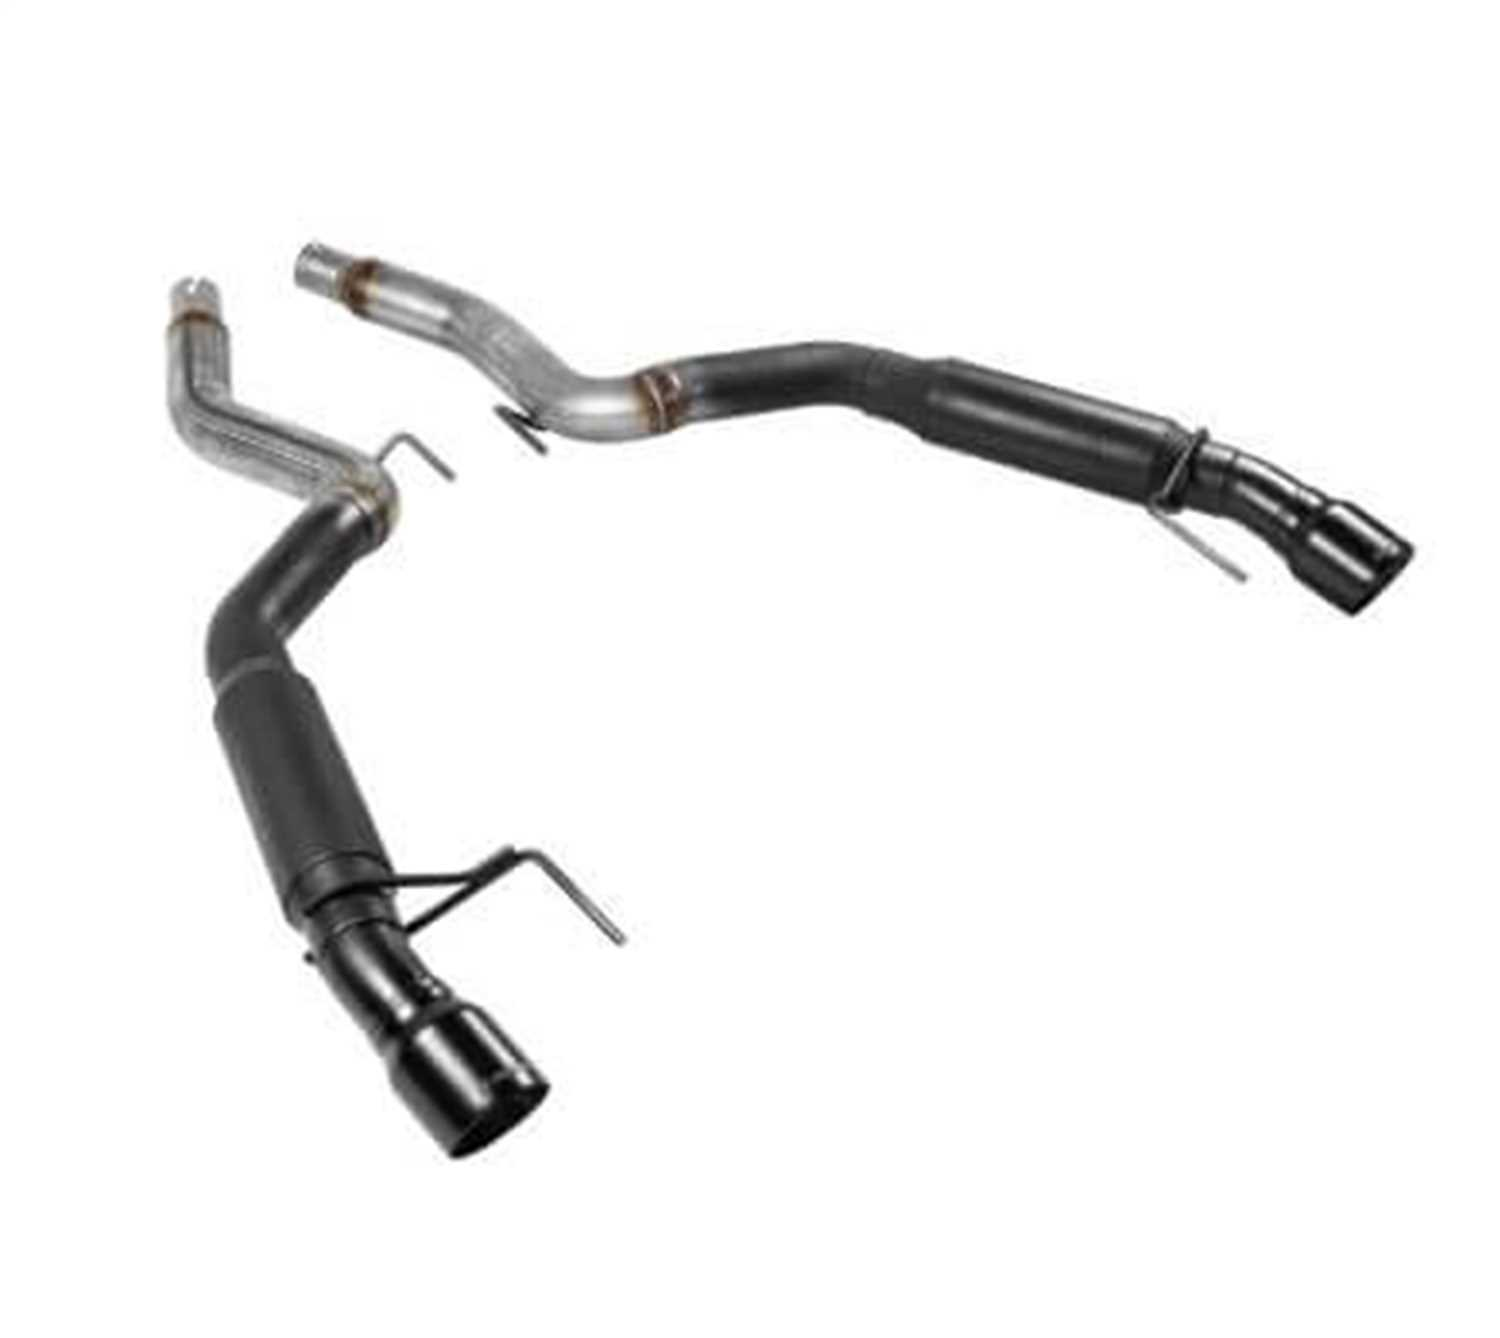 817826 Flowmaster Outlaw Series™ Axle Back Exhaust System